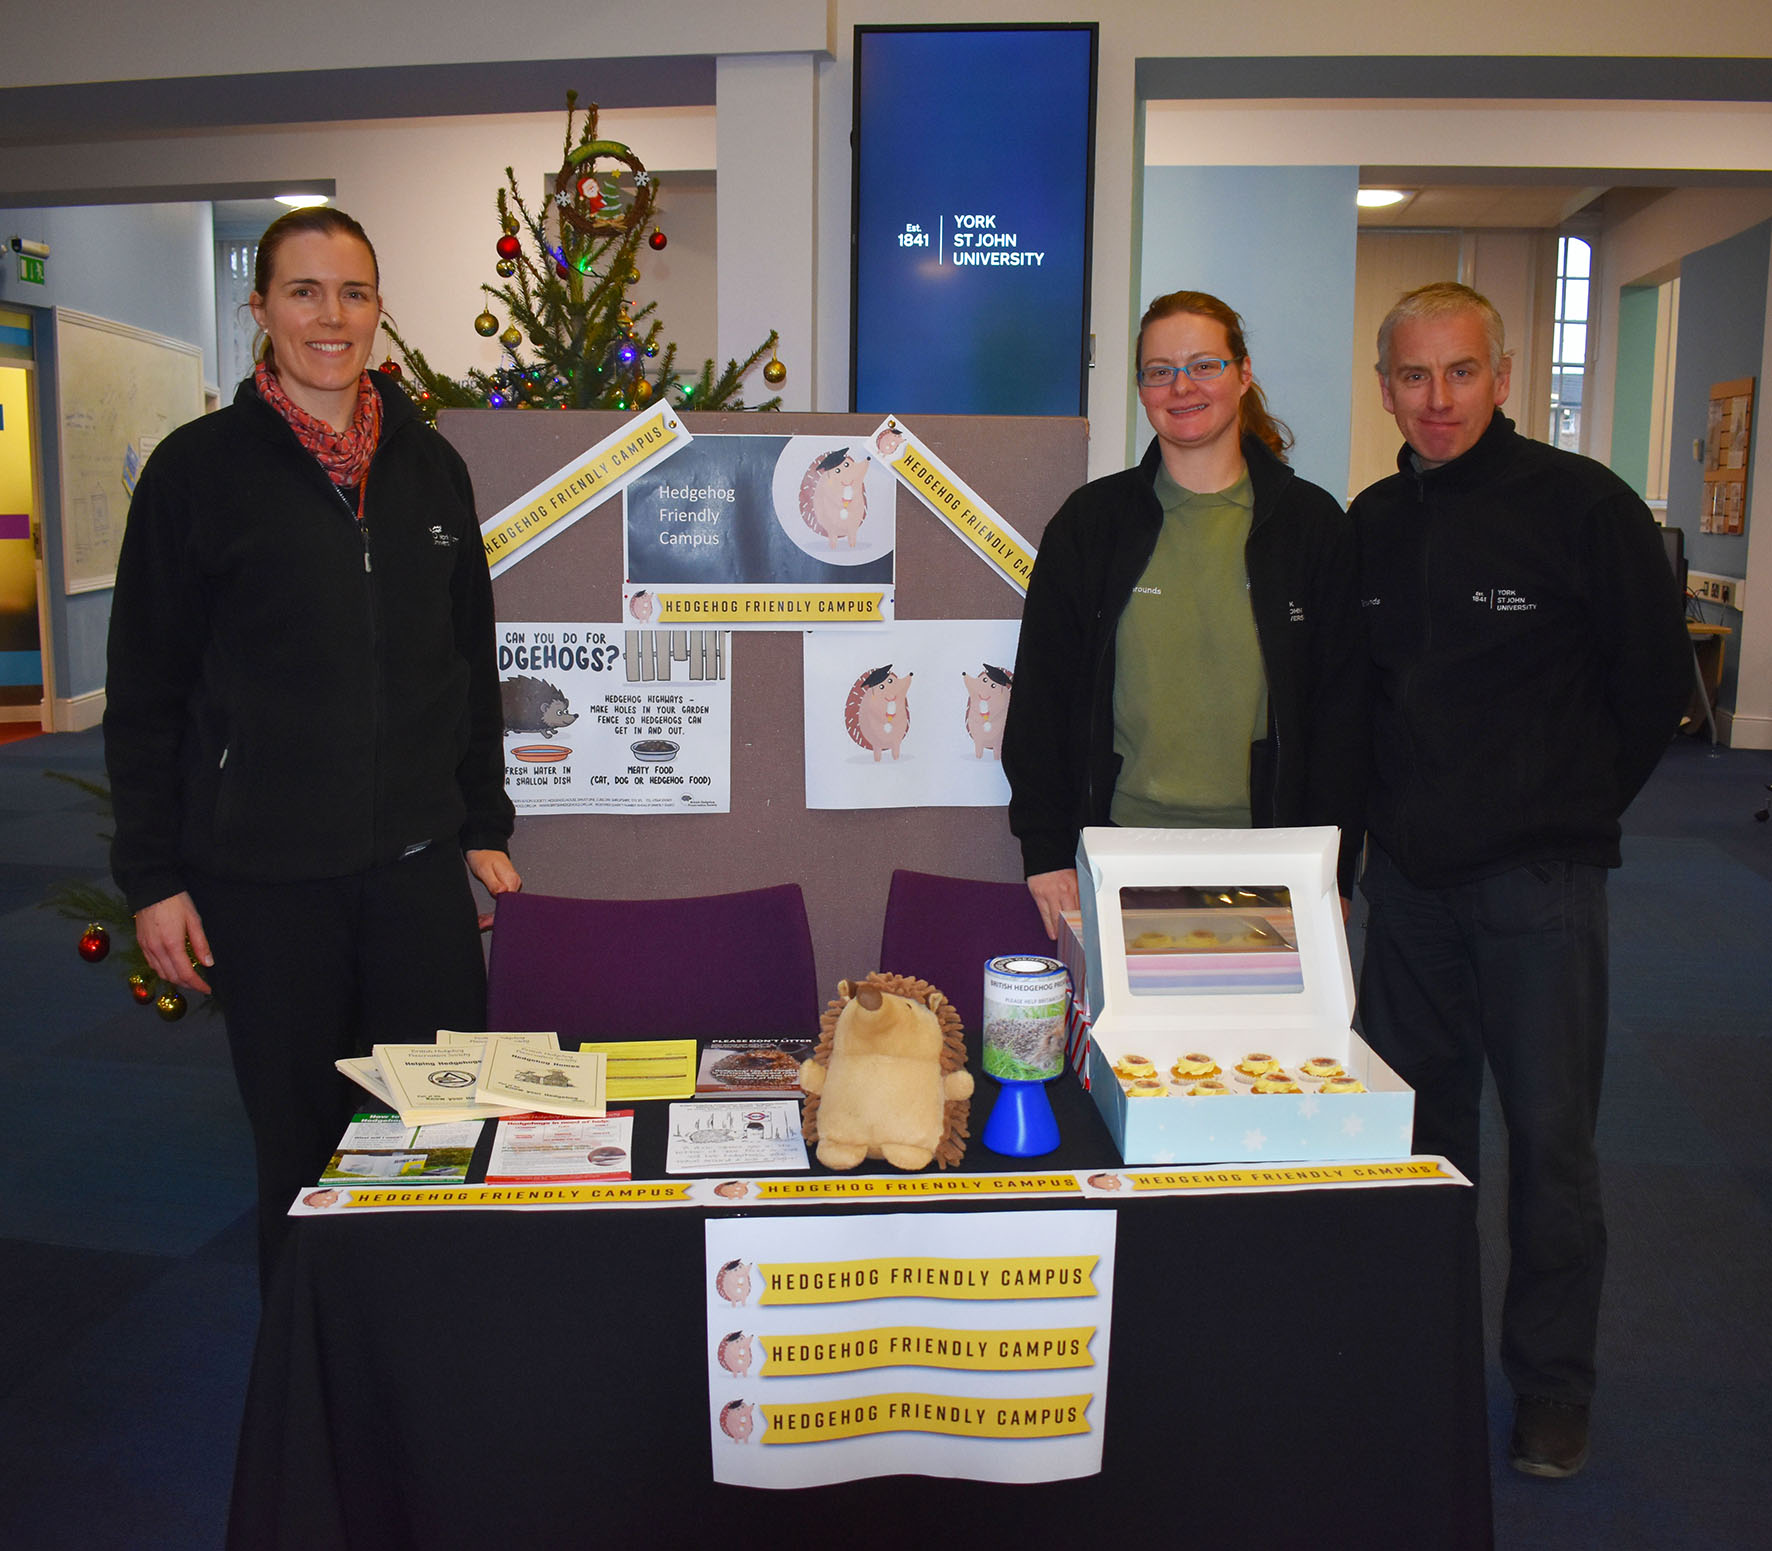 Hedgehog Friendly Campus launch event with Sarah Williams, Jacquie Pitcher and William Cooper